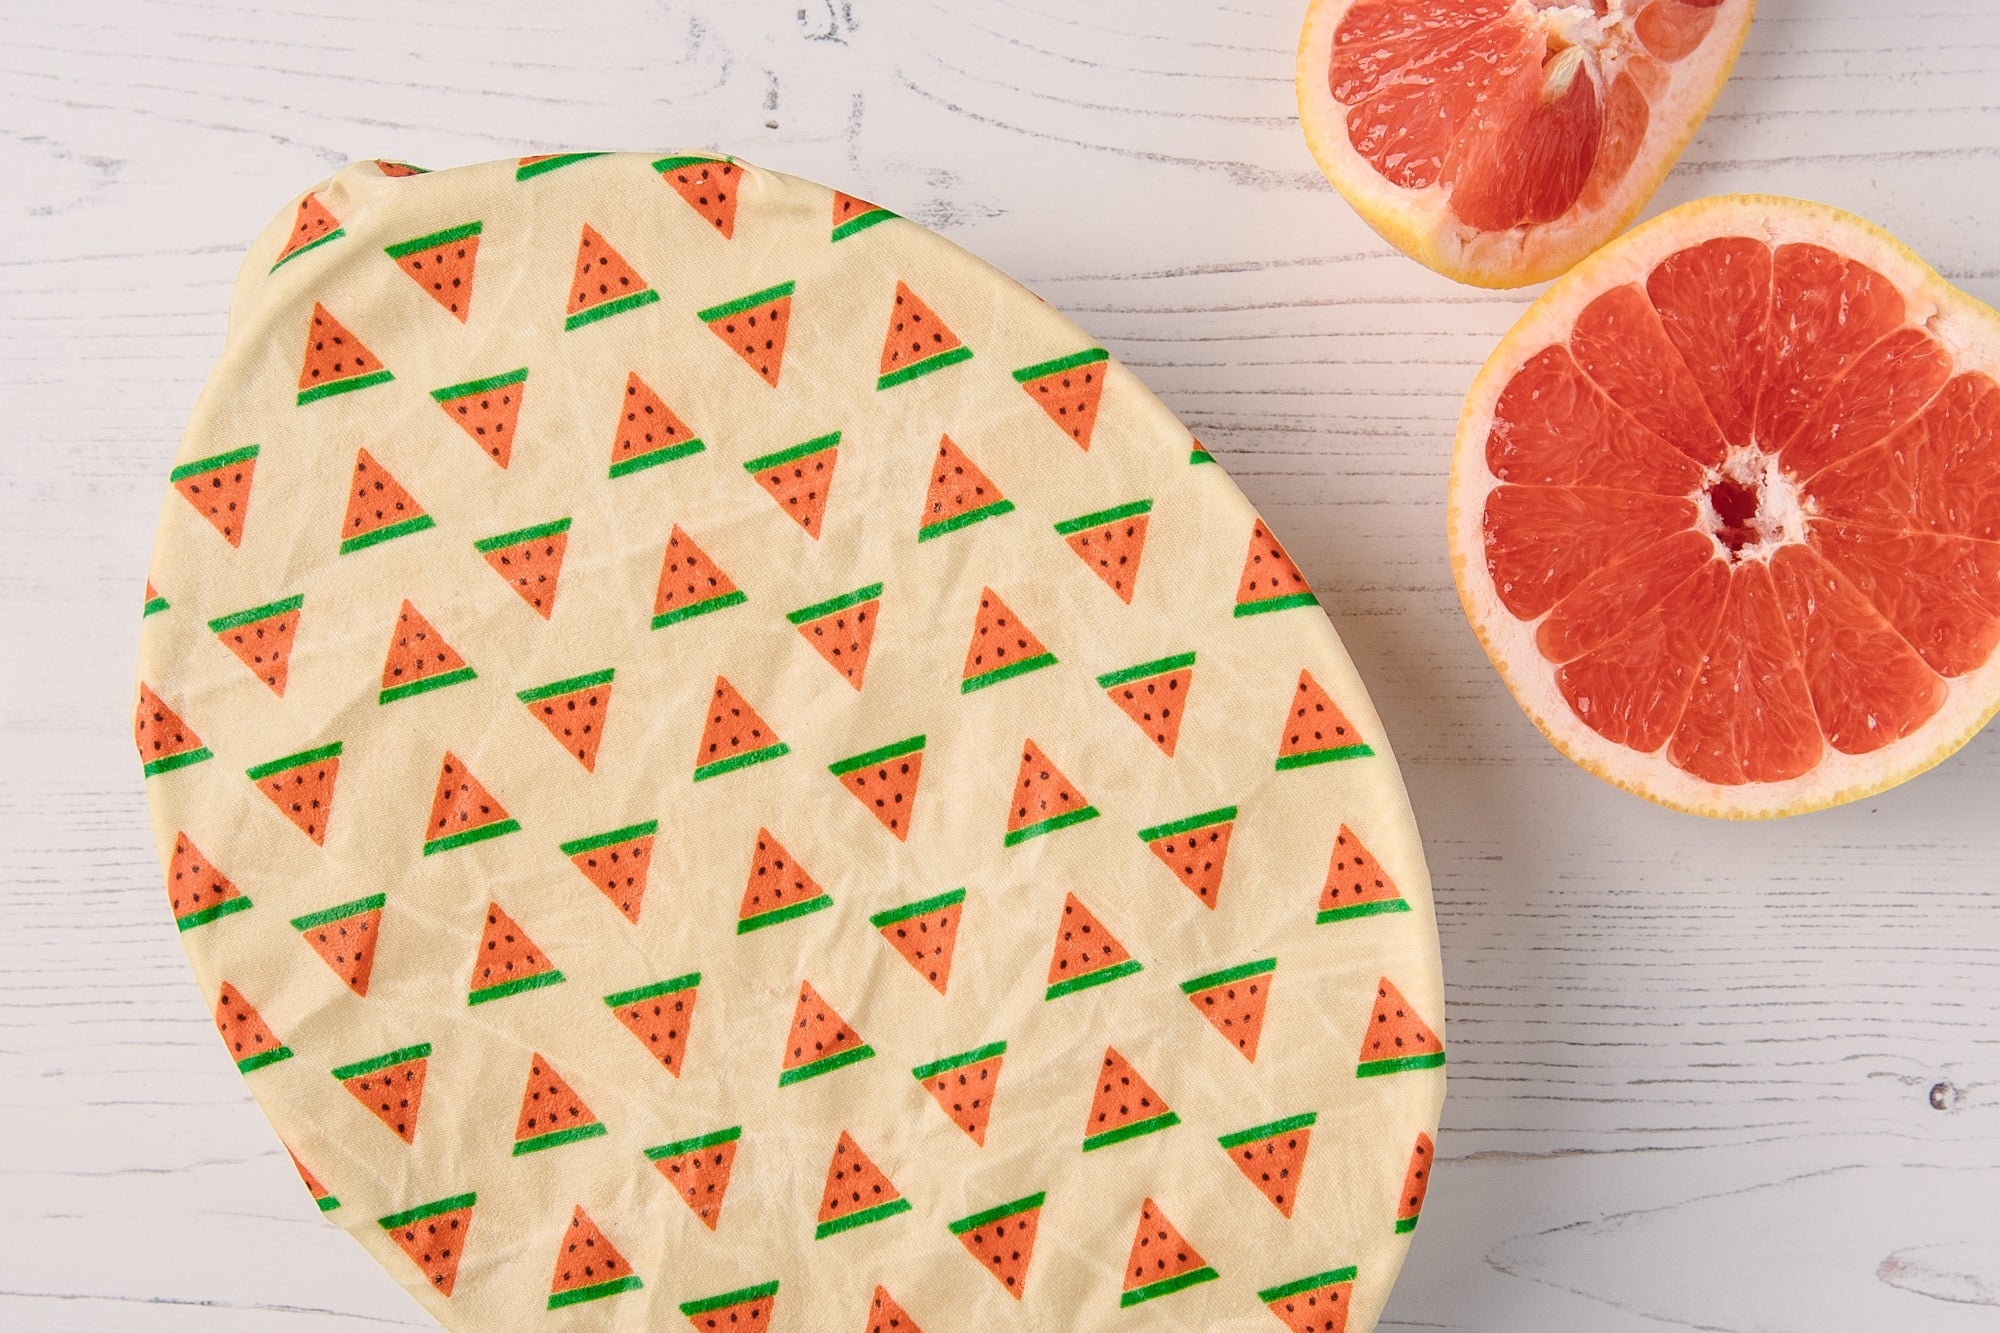 Eco-Bees Beeswax Cling Film Alternative Food Wrap - Melon Design (Variety Pack x3)